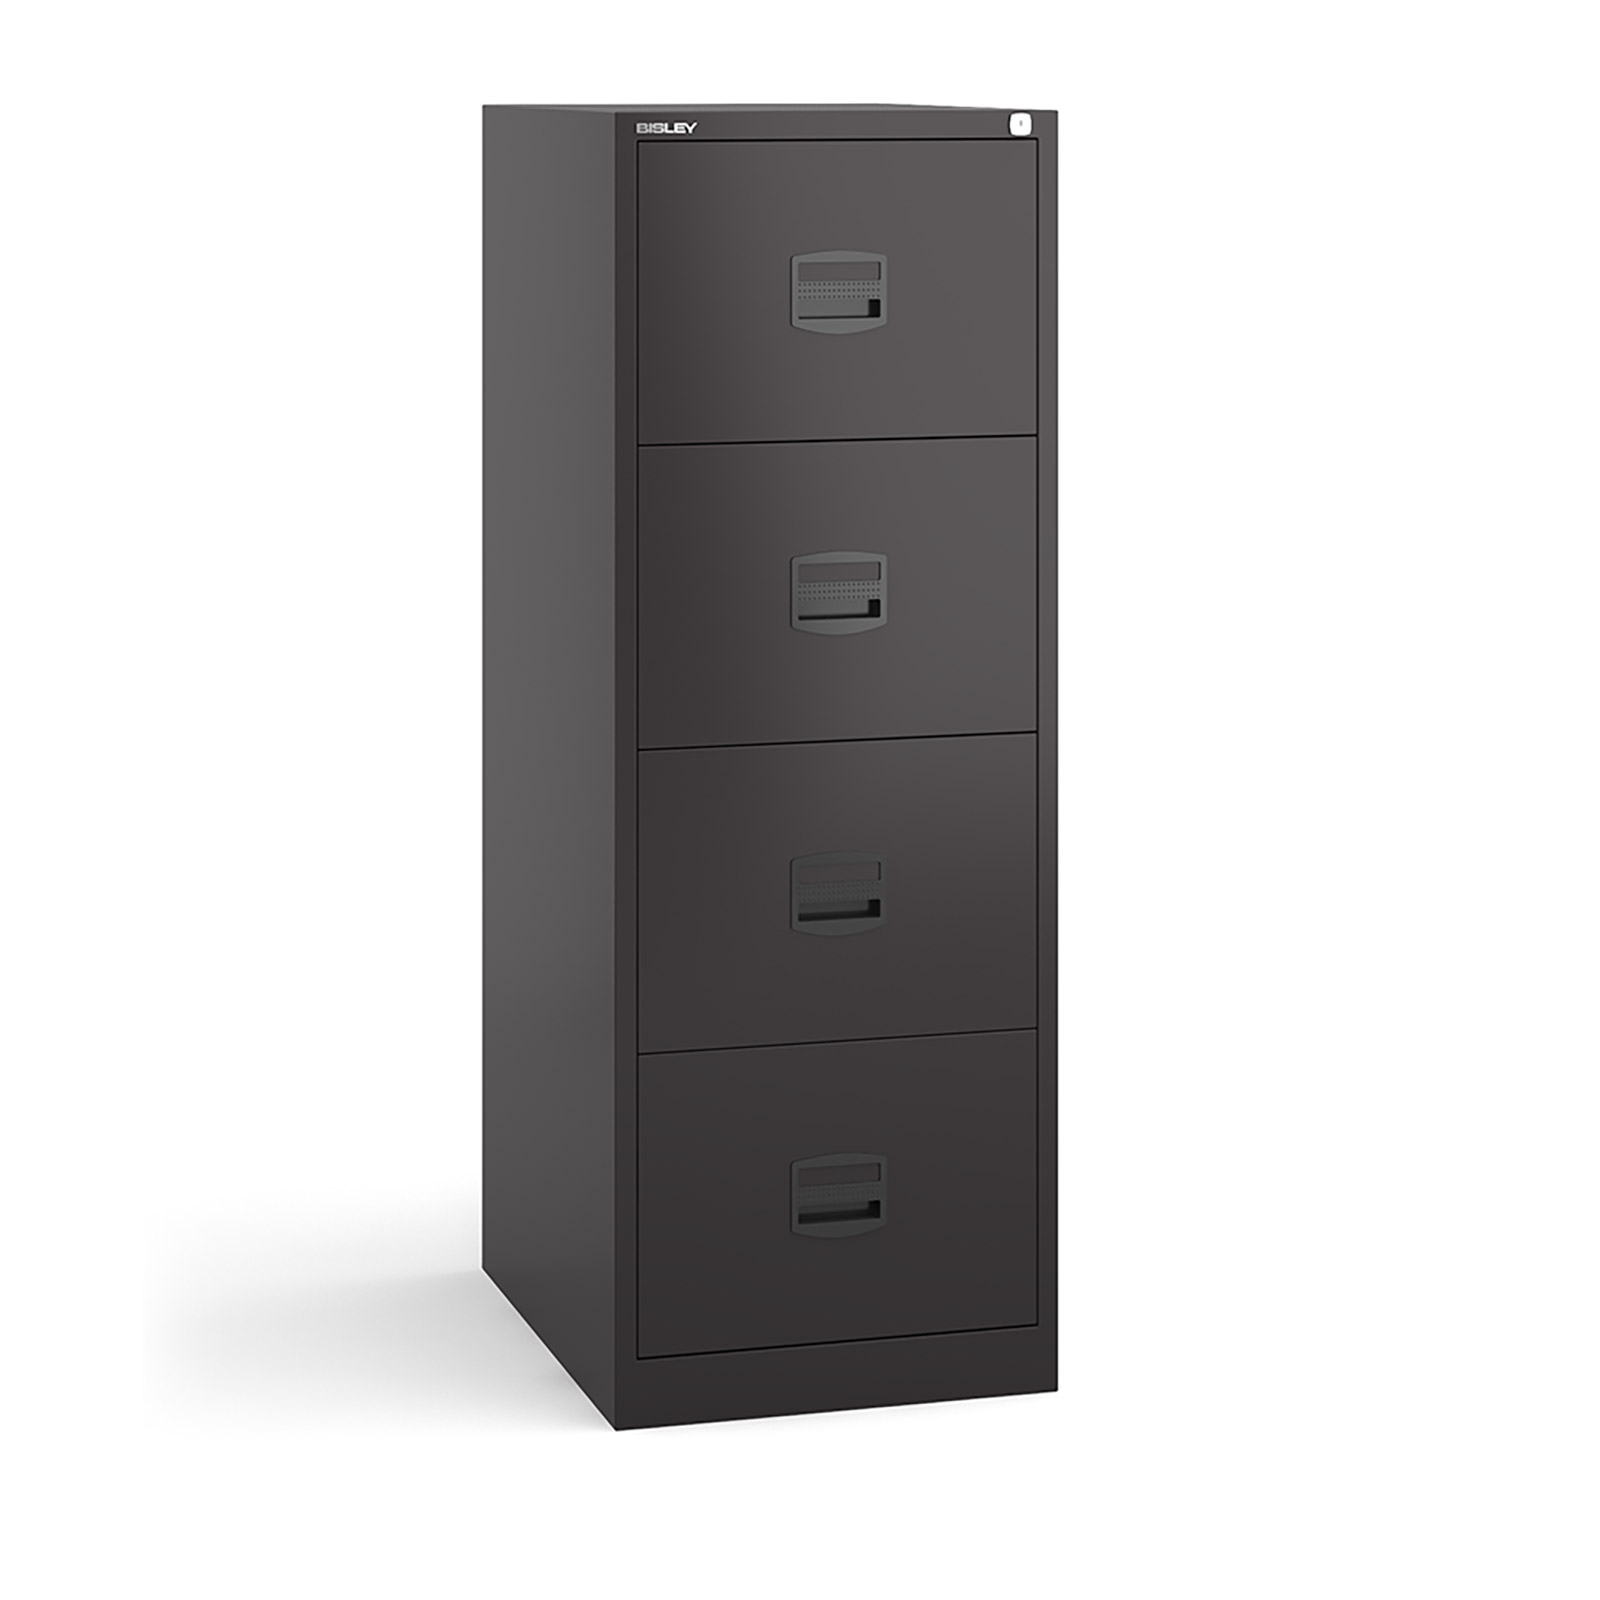 4 drawer contract filing cabinet in Black